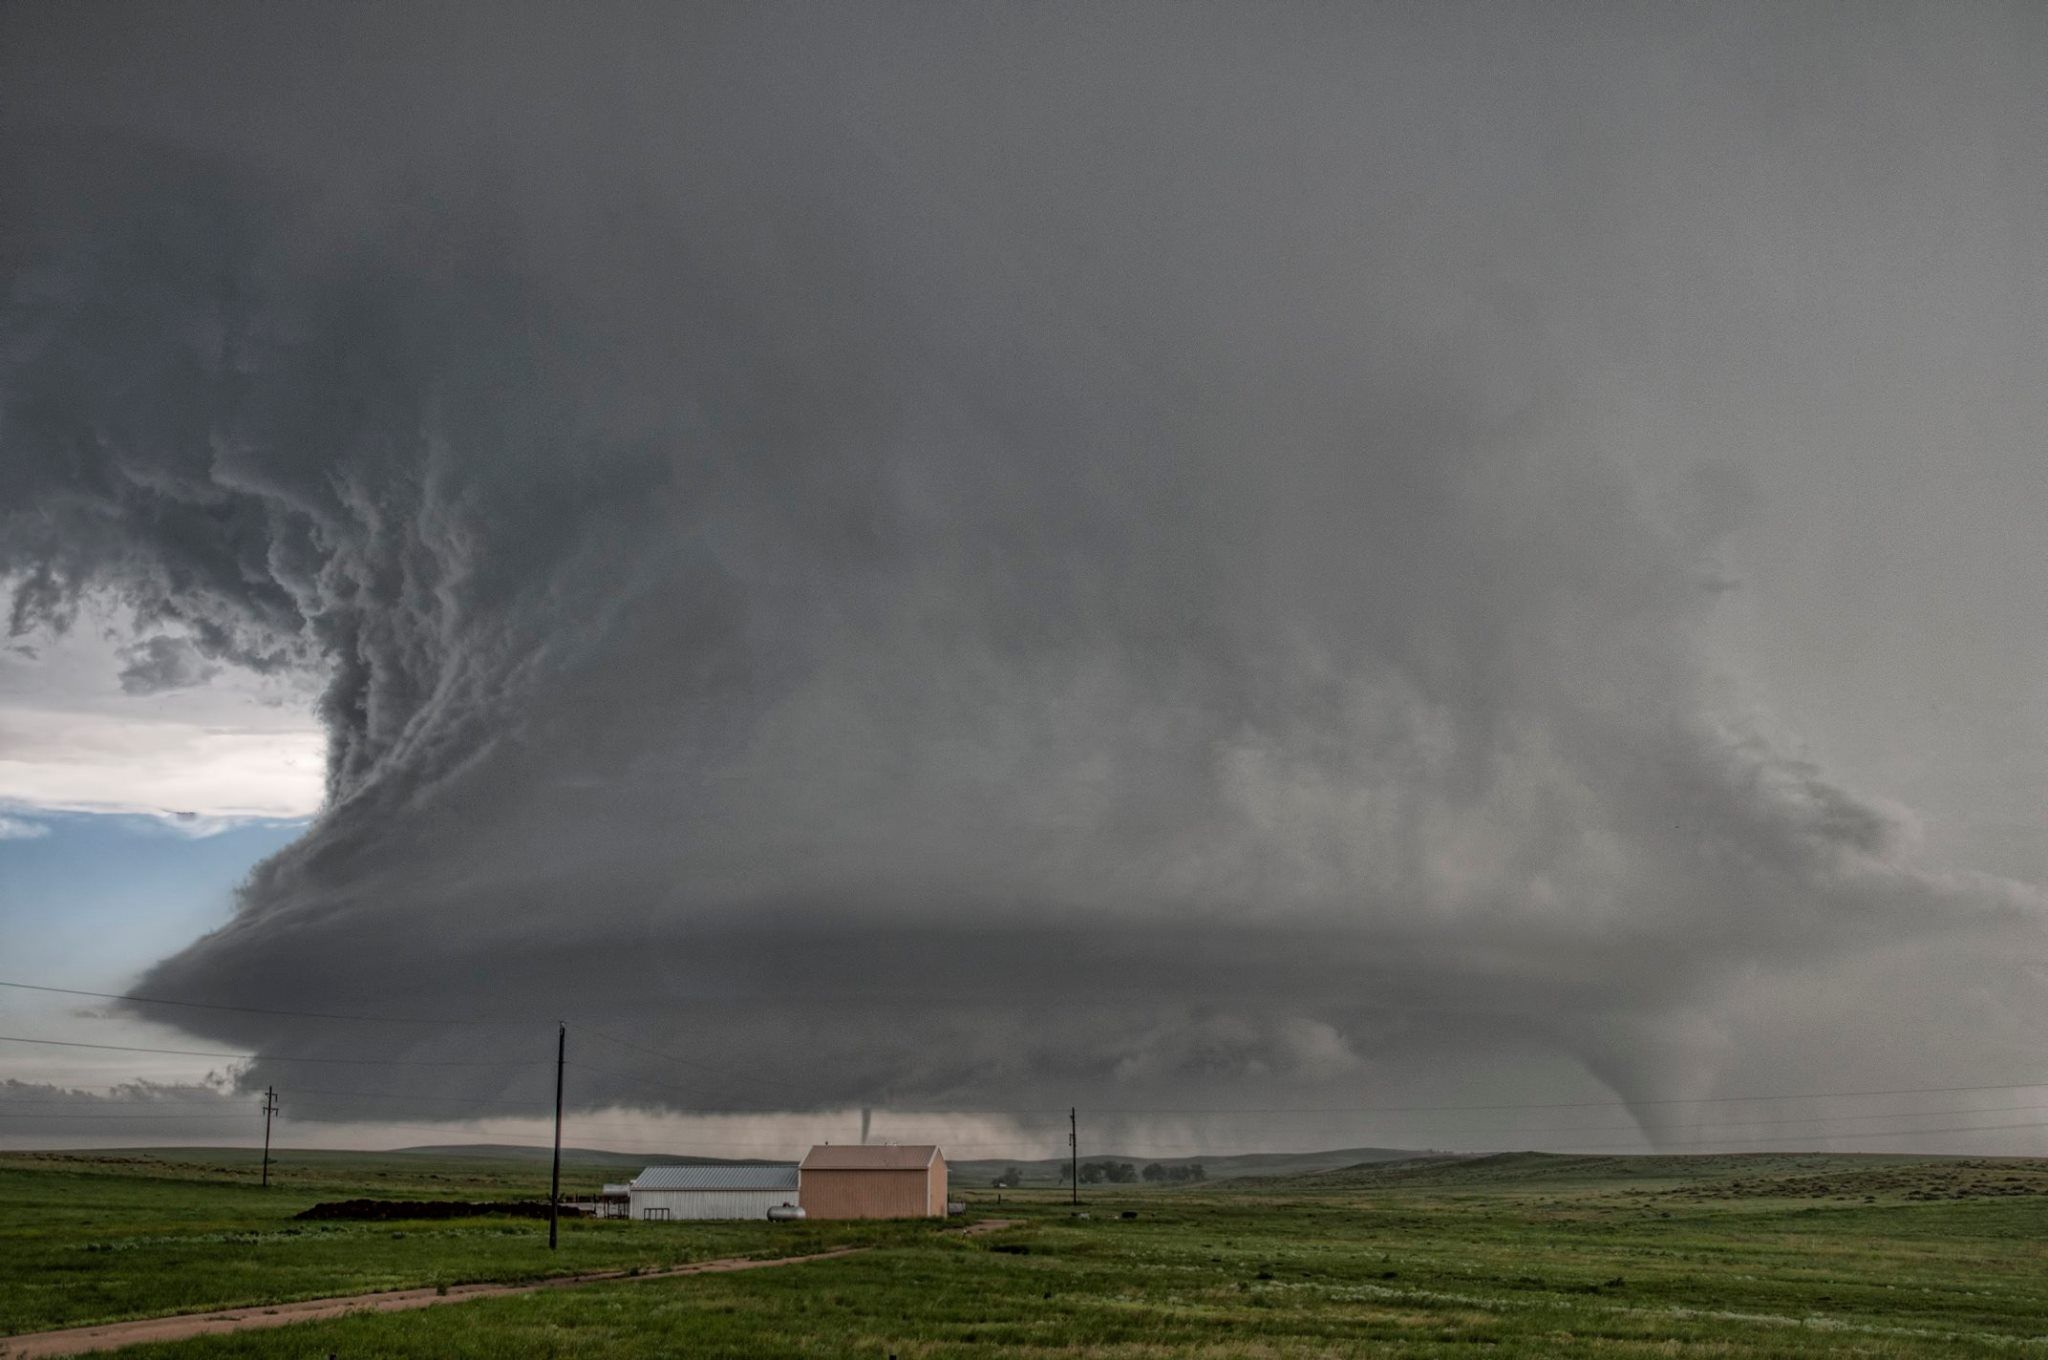 Top 10 Weather Photographs 6 19 2015 Tornadoes Spin Up On The